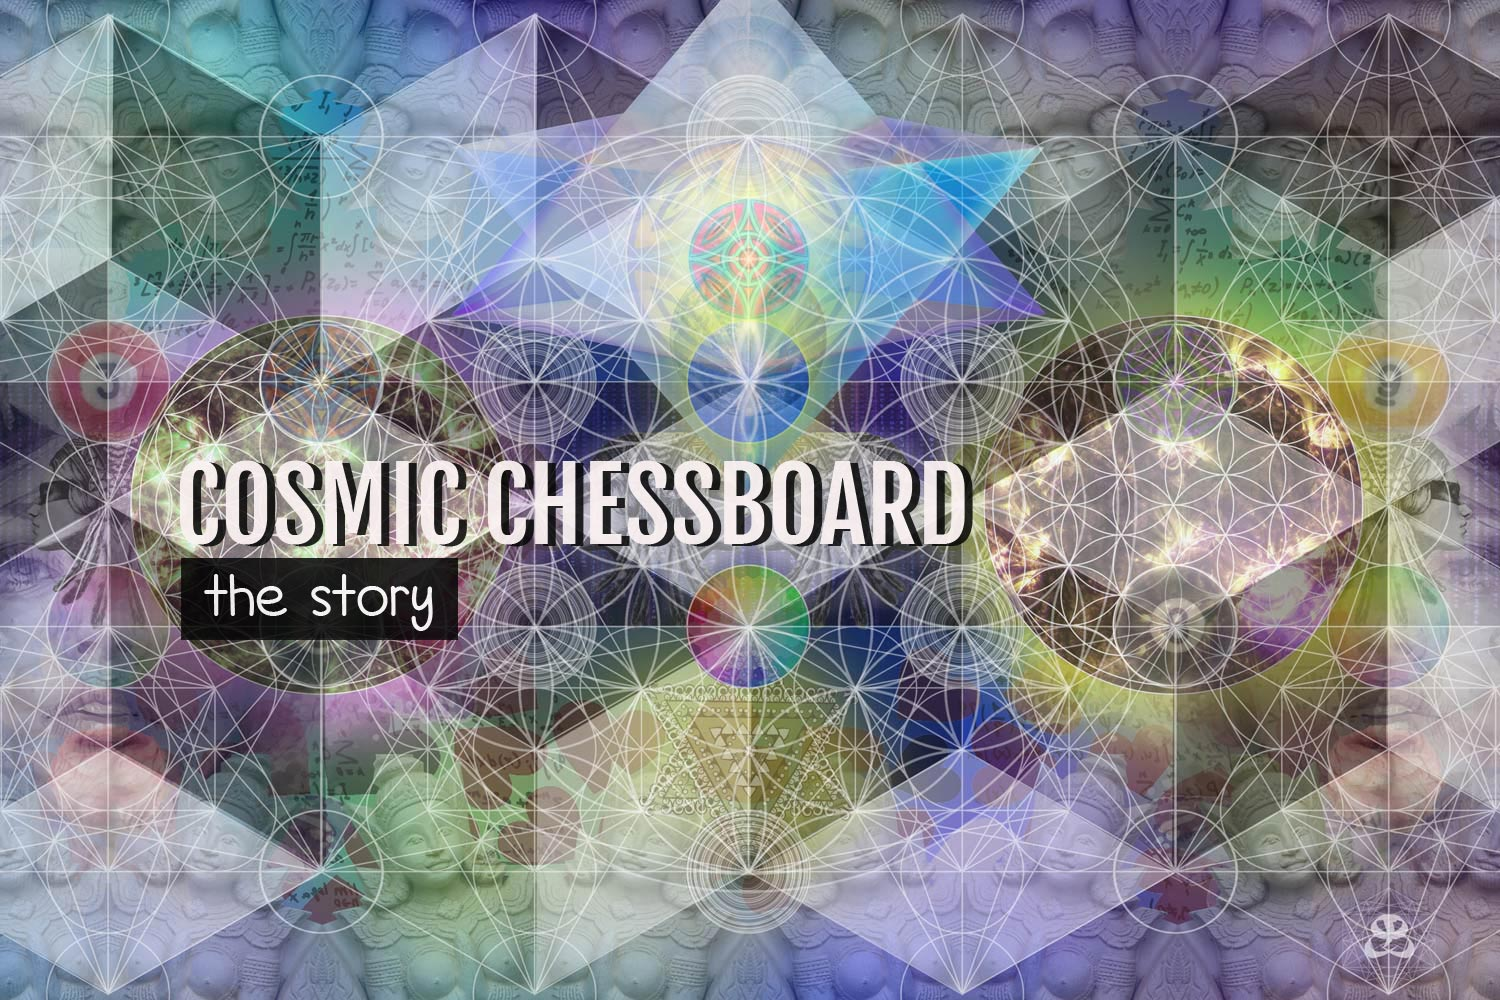 DIGITAL ART AMSTERDAM - Art Story COSMIC CHESSBOARD